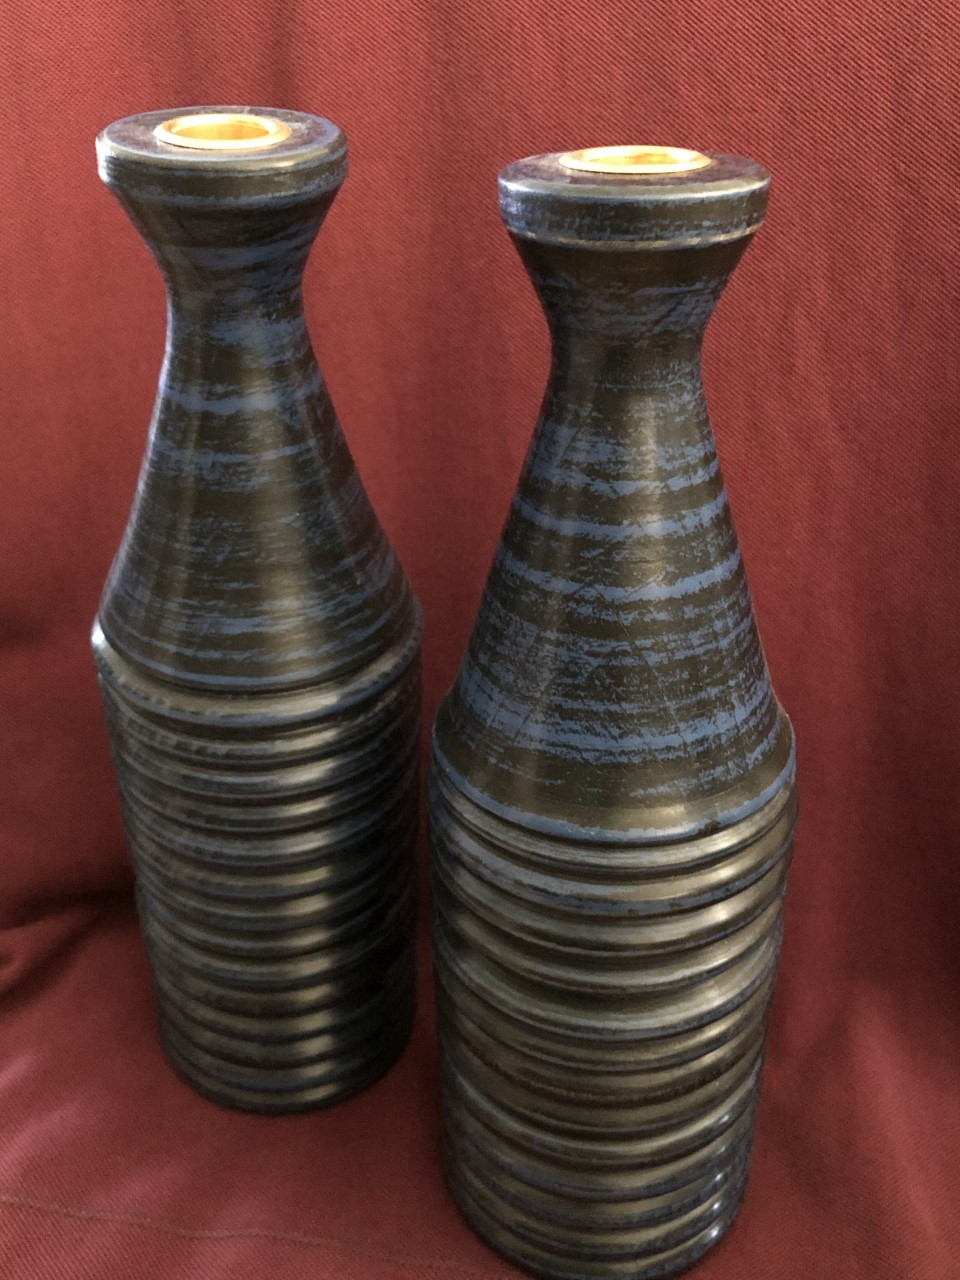 Candle holders by Monica Bluestein, a five-year woodturning veteran.{ }/ Image courtesy of the Ohio Valley Woodturners Guild // Published: 4.18.19